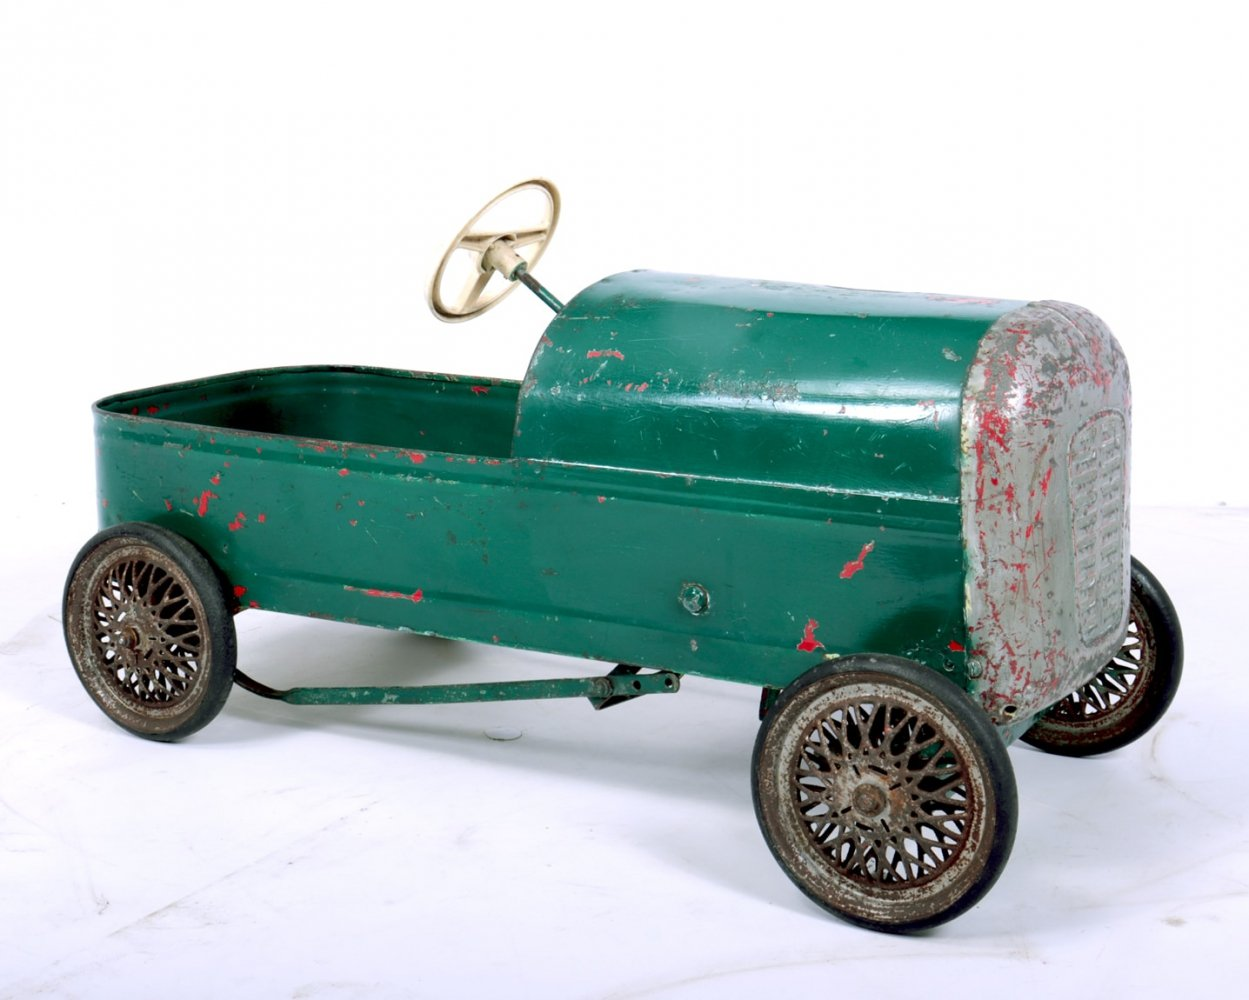 Vintage DUKE Pedal Car by Triang, c1950